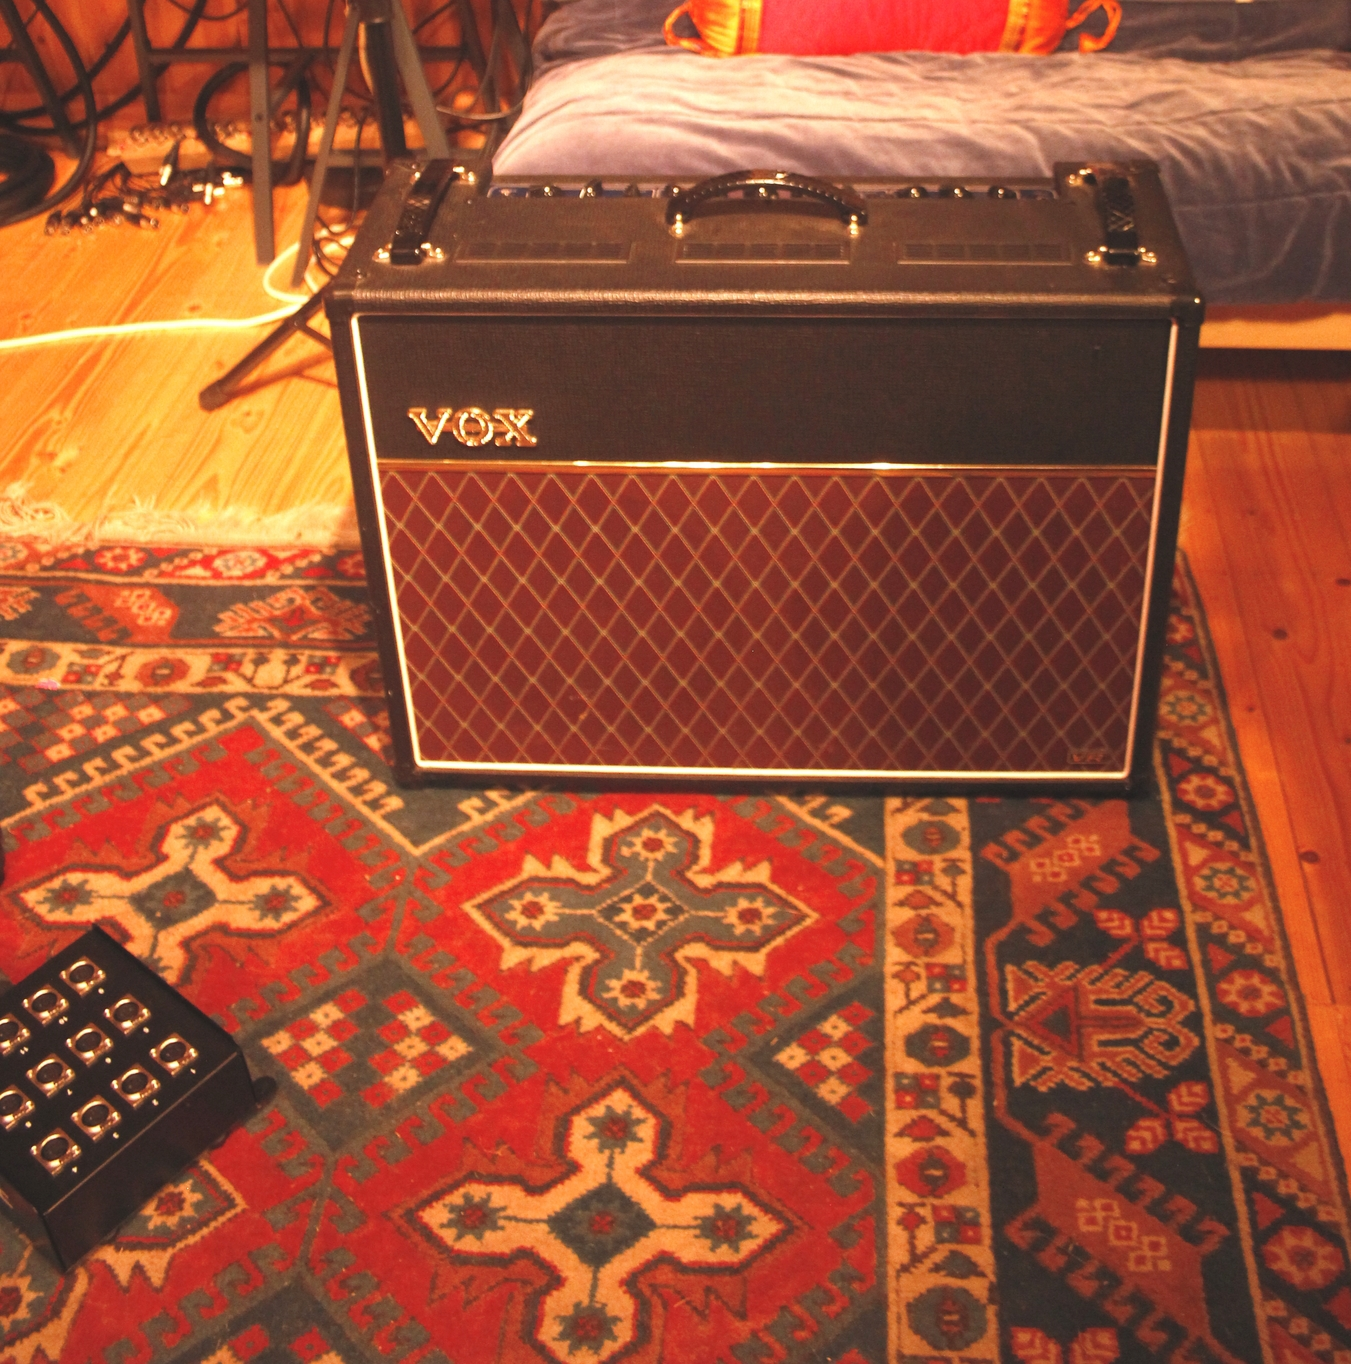 Vox ac30vr. Awesome modern vox style amp.